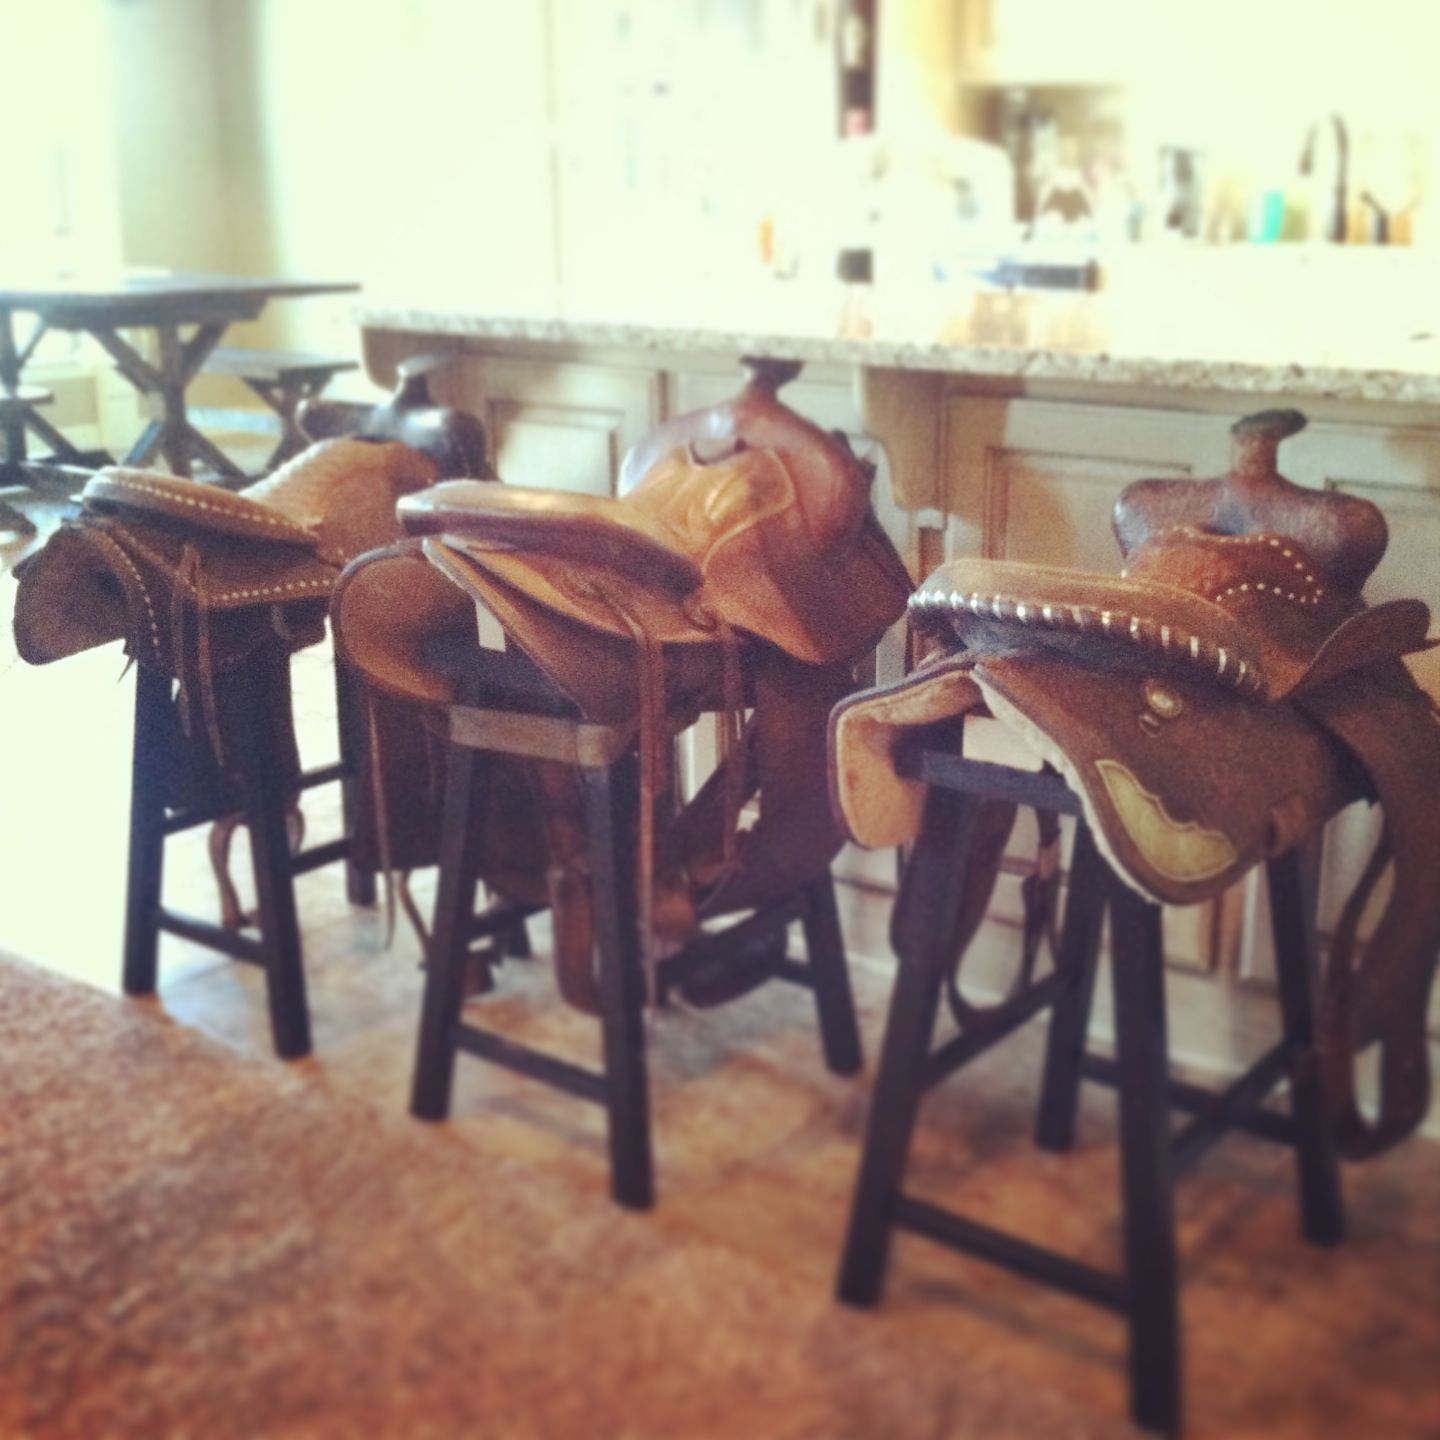 Horse Saddle Seat Chair Childrens Table And Sets Plastic Diy Stools Cowgirlchic Faves Pinterest